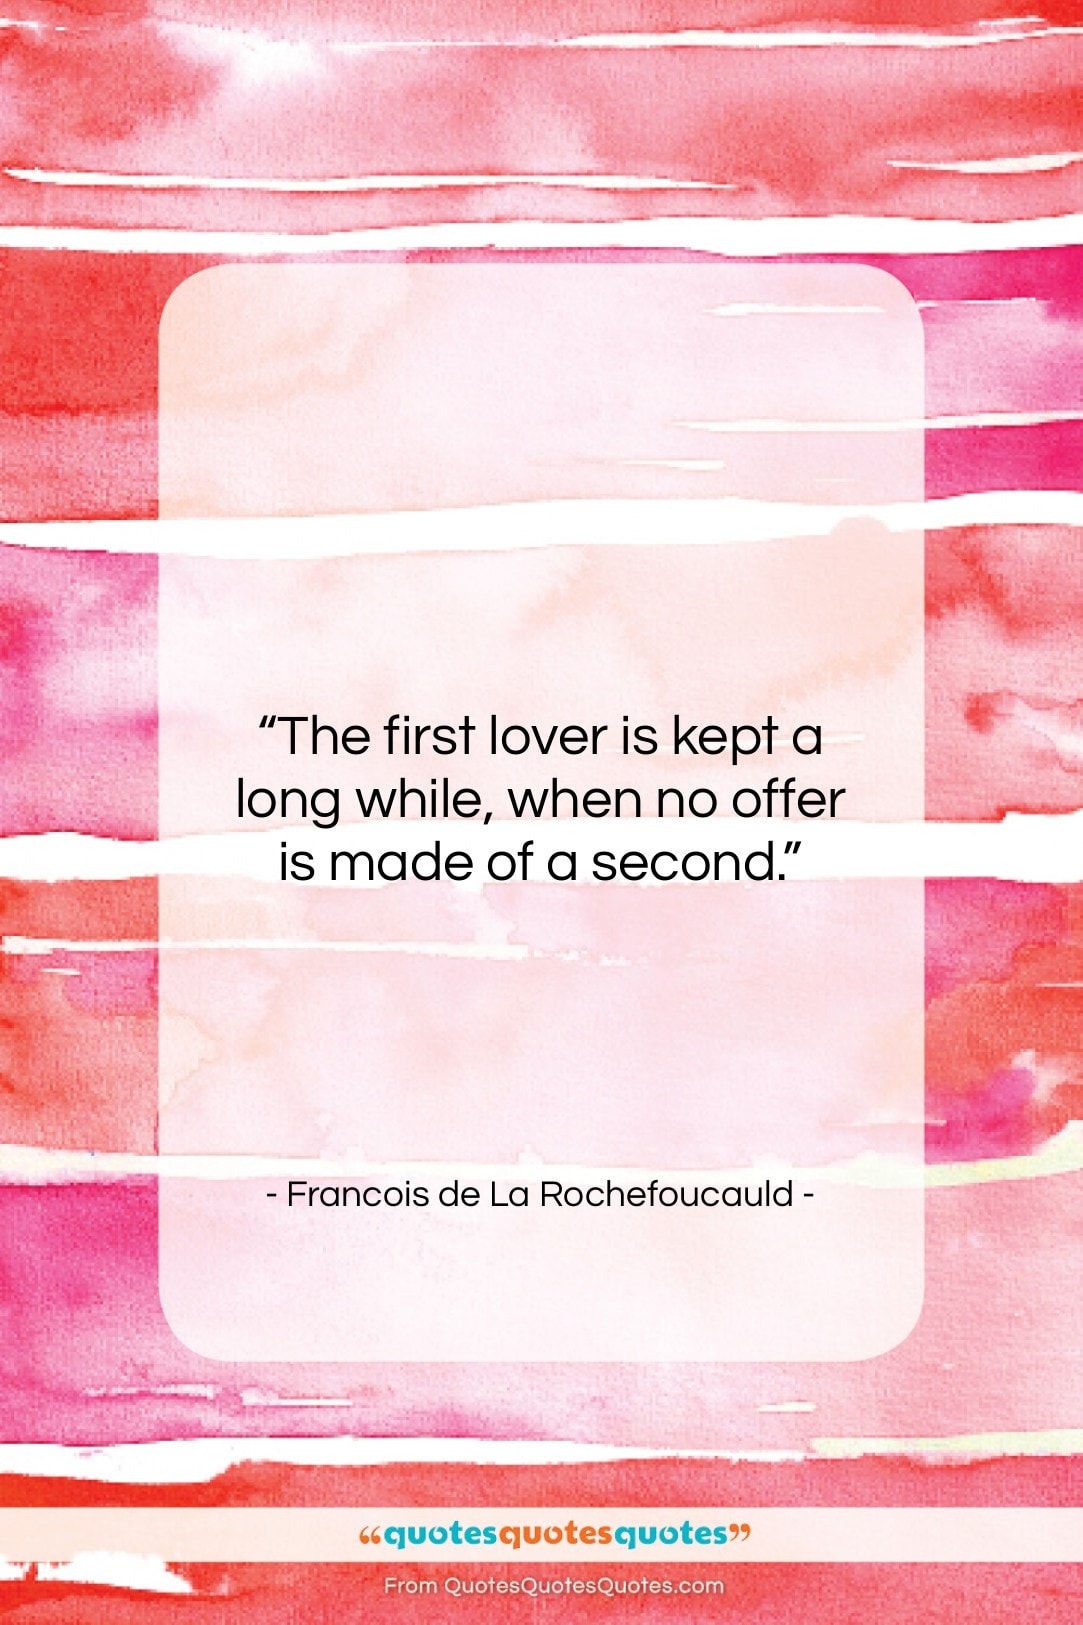 """Francois de La Rochefoucauld quote: """"The first lover is kept a long…""""- at QuotesQuotesQuotes.com"""